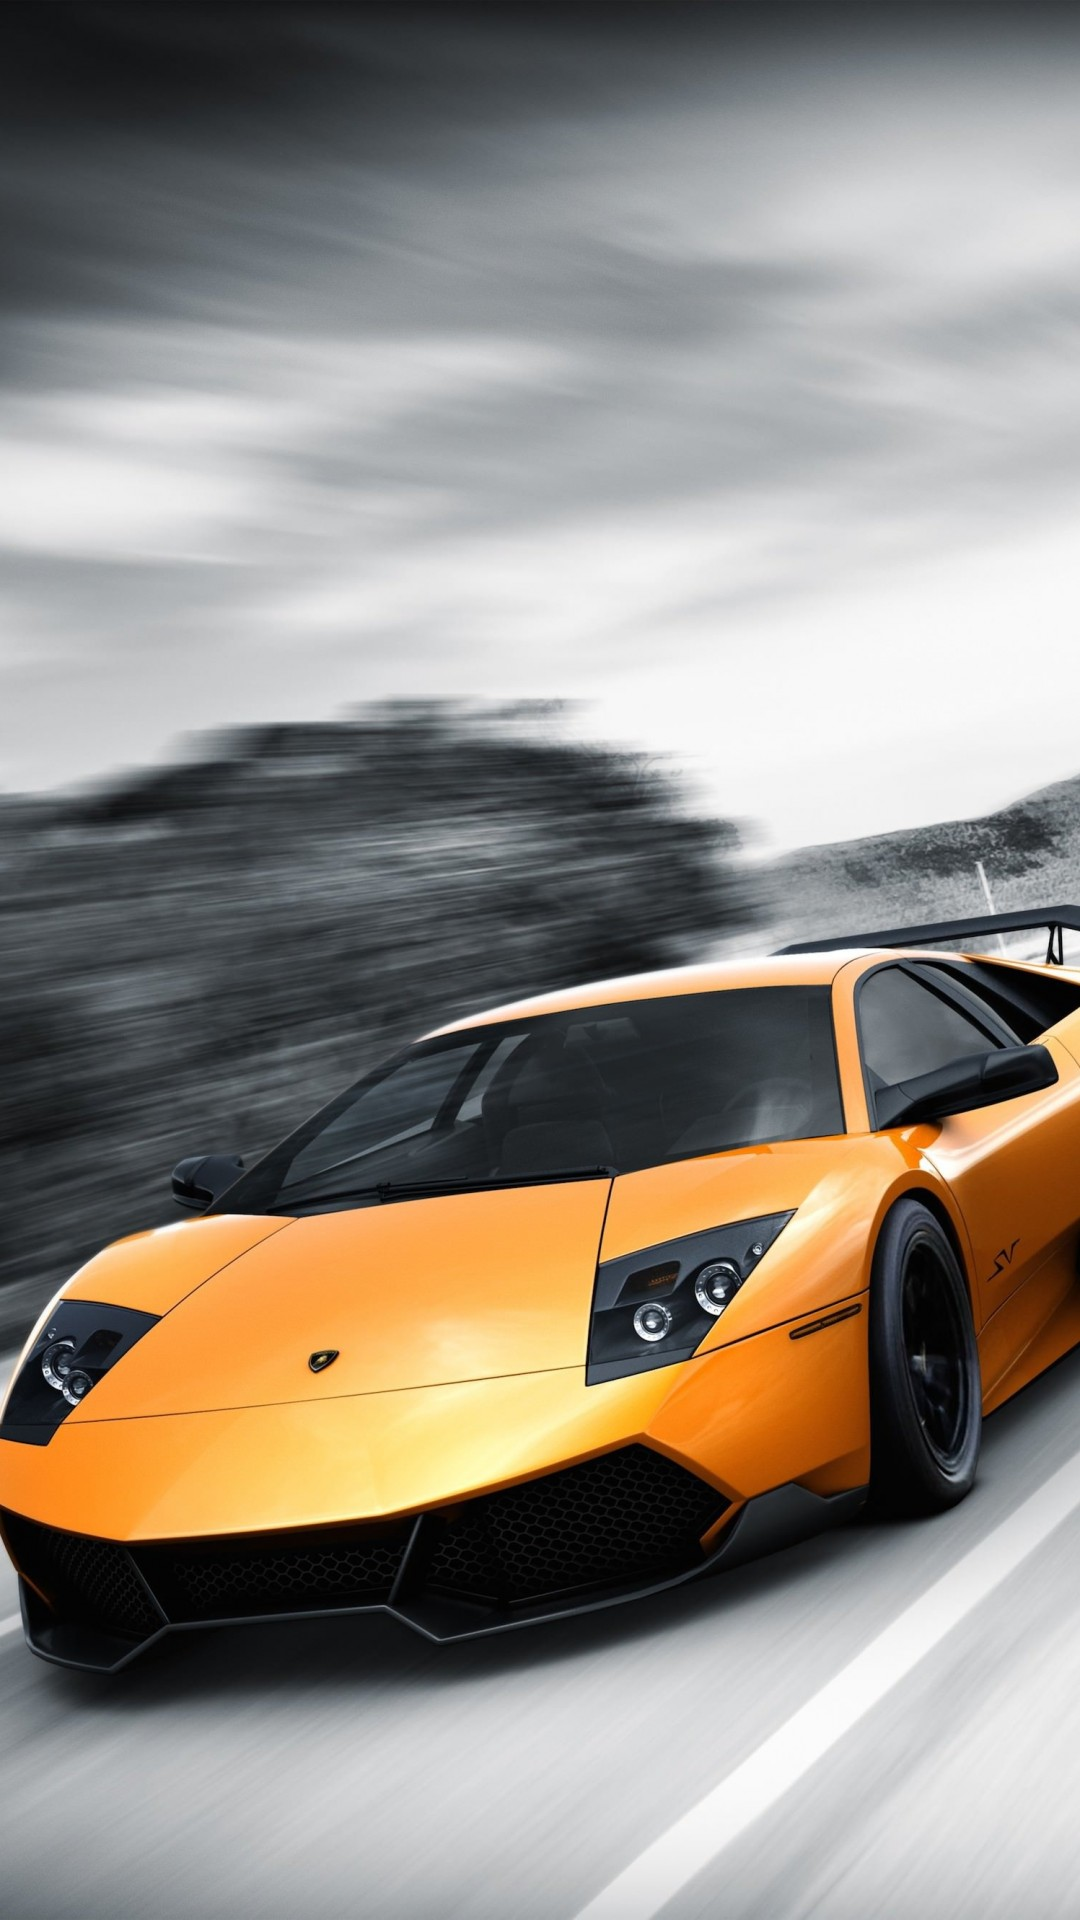 Lamborghini Murcielago LP670 Wallpaper for SONY Xperia Z3